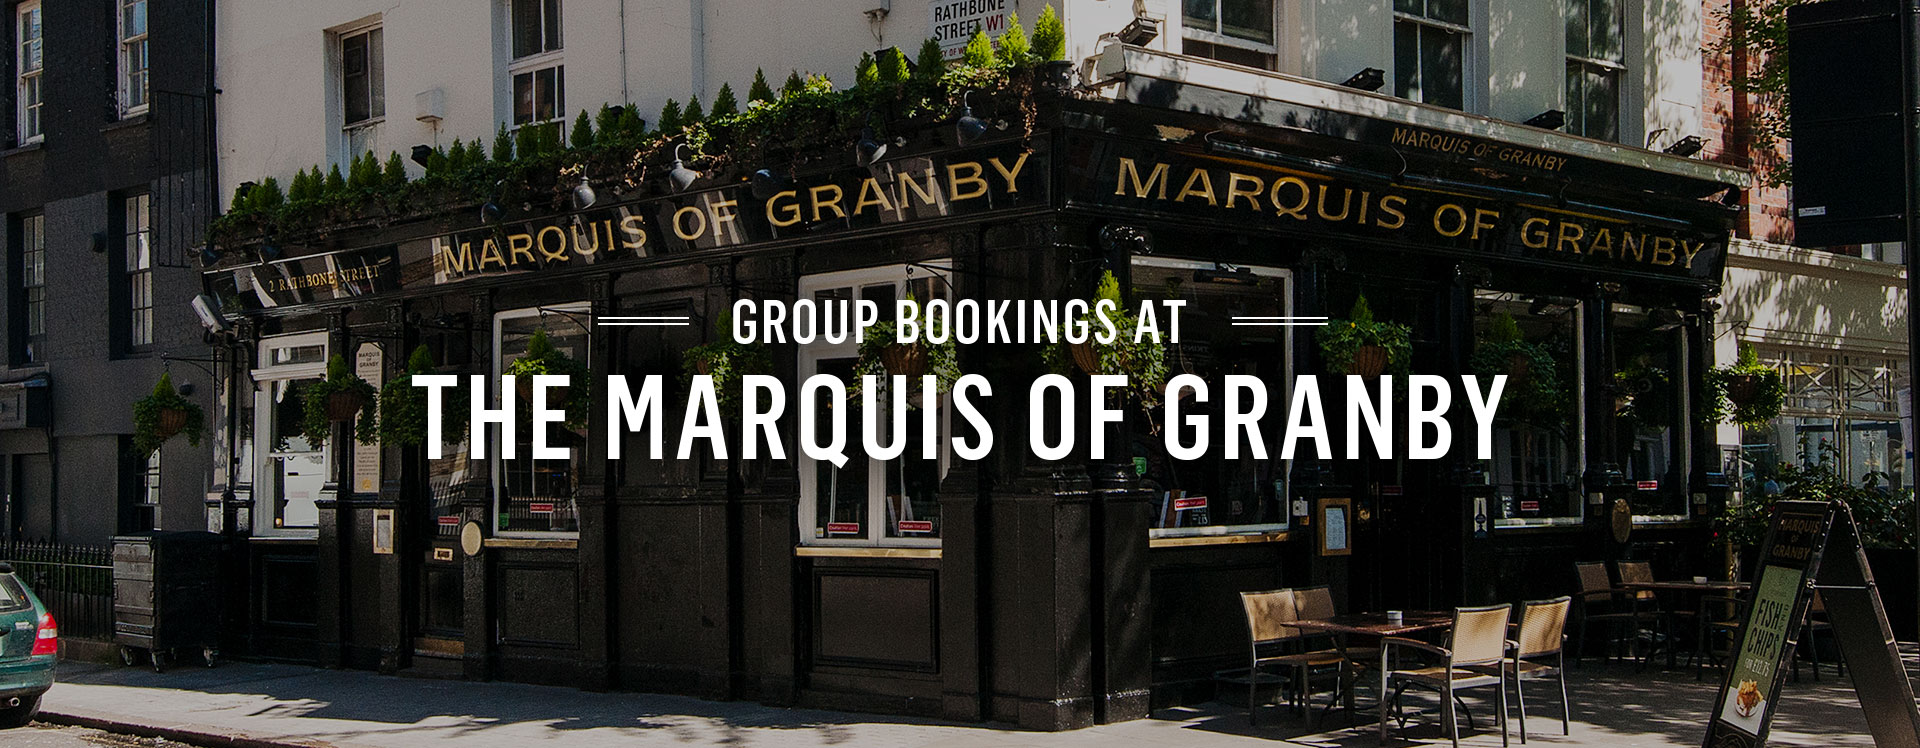 Group Bookings at The Marquis of Granby